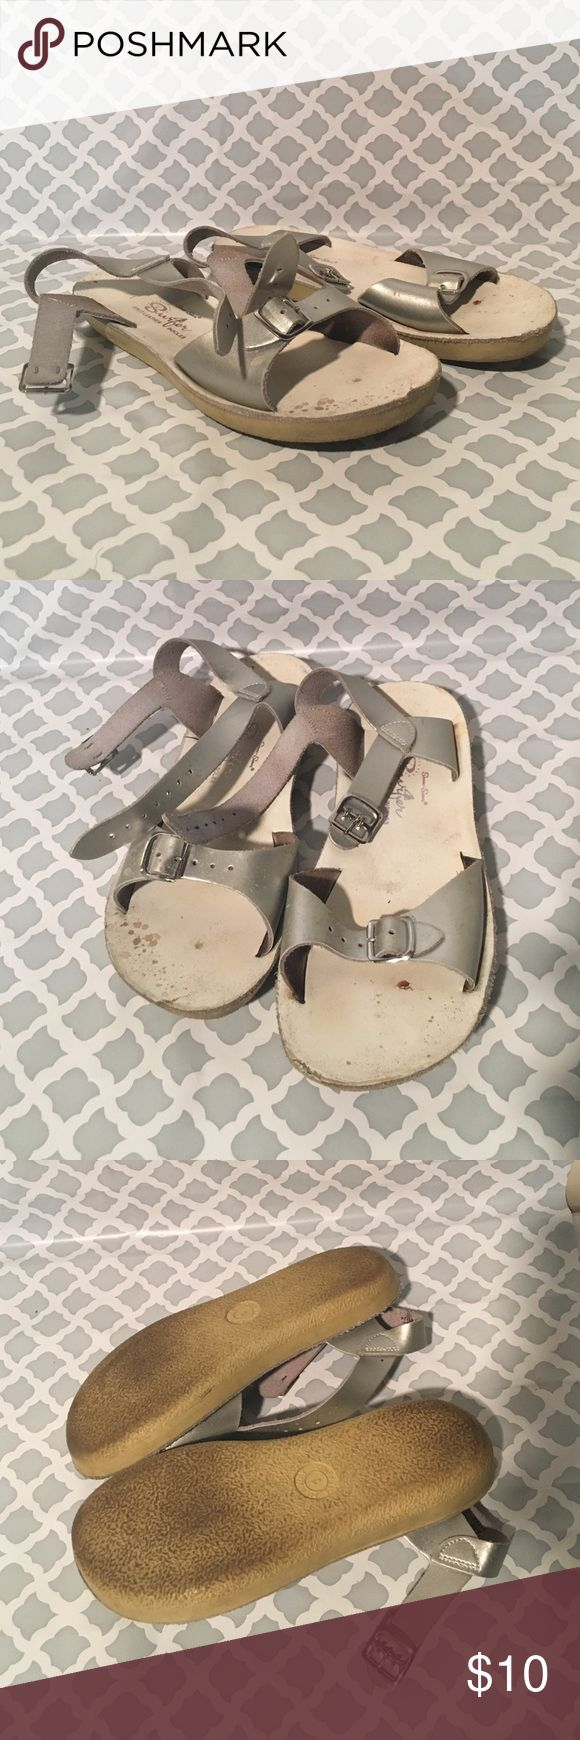 Youth 1 silver salt water sandals Preowned some marks I haven't tried to remove see pic saltwater Shoes Sandals & Flip Flops